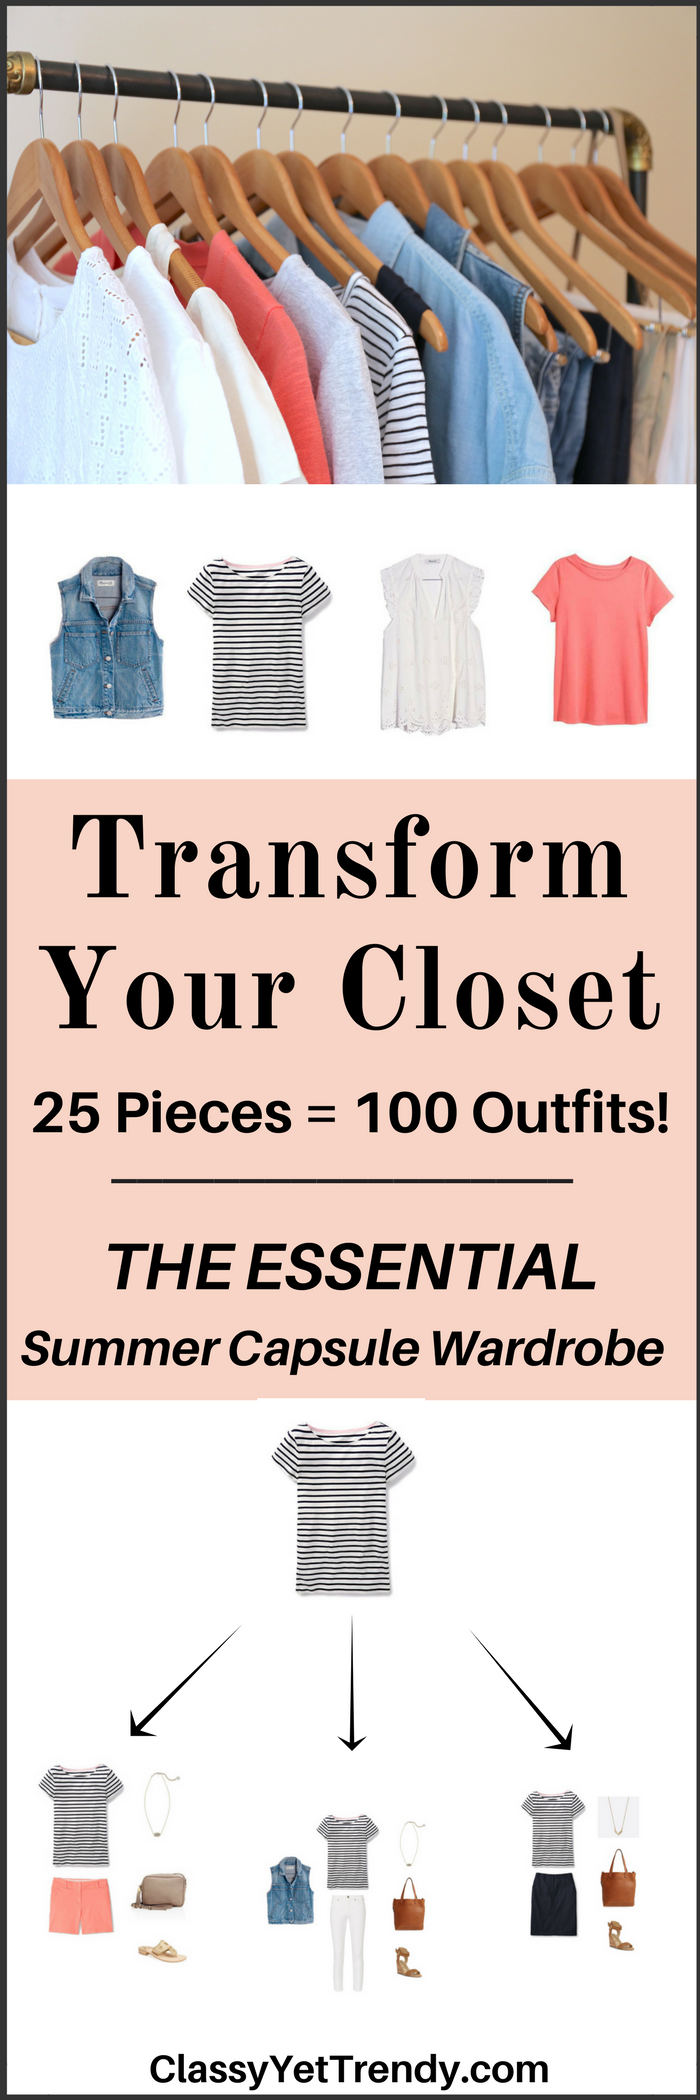 Essential Capsule Wardrobe e-book- Summer 2017